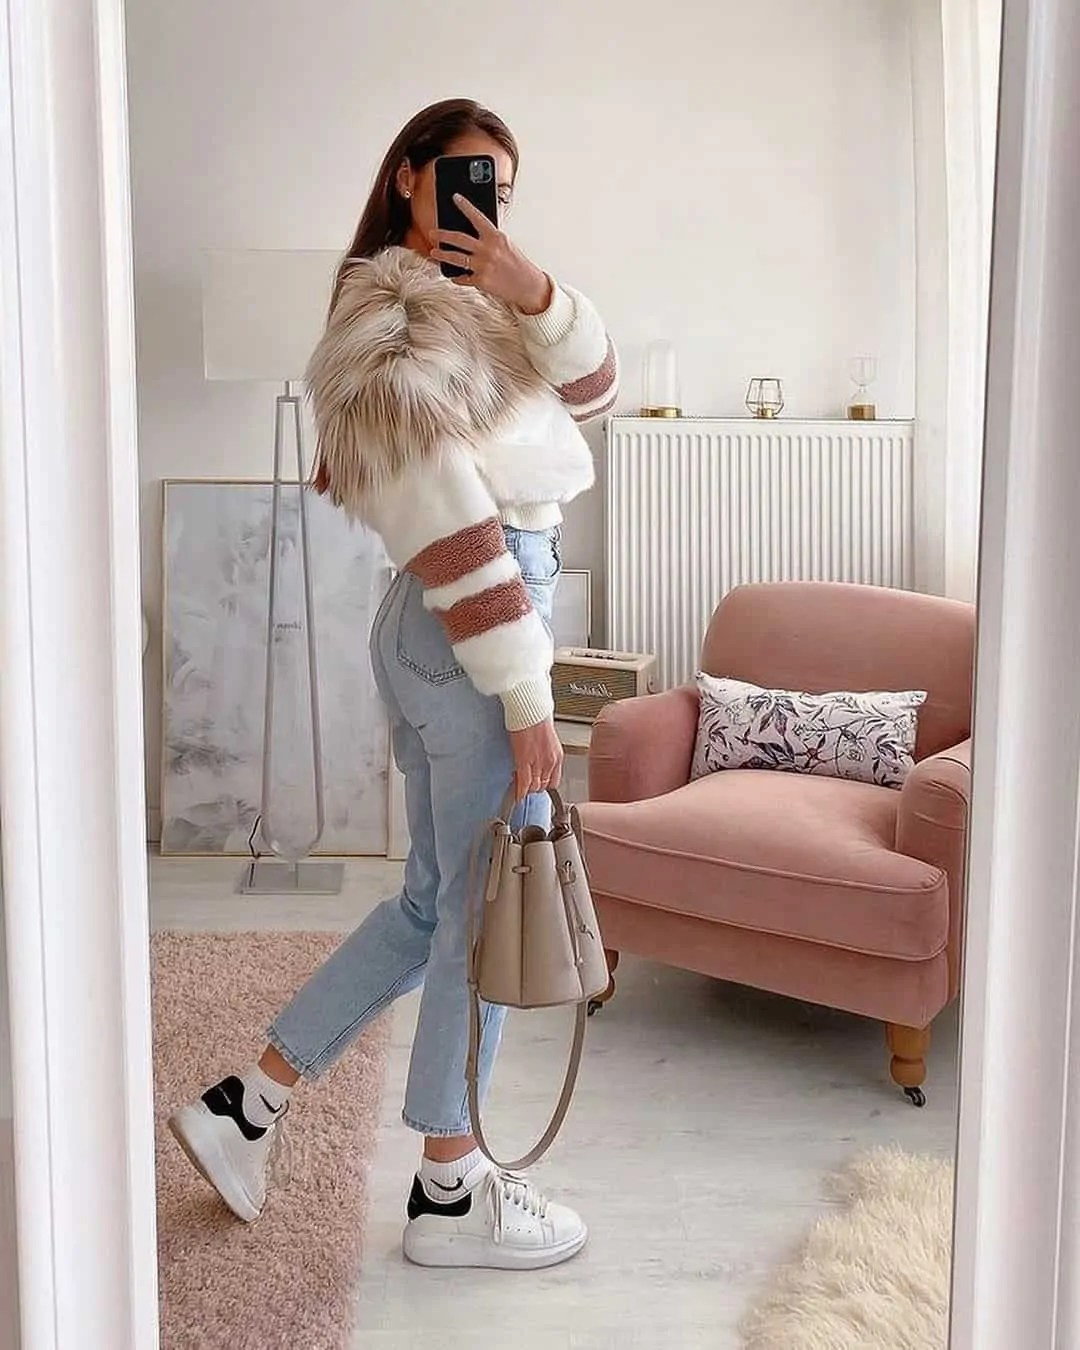 100+ fashion inspo outfits that you have to see no matter what your style is 55